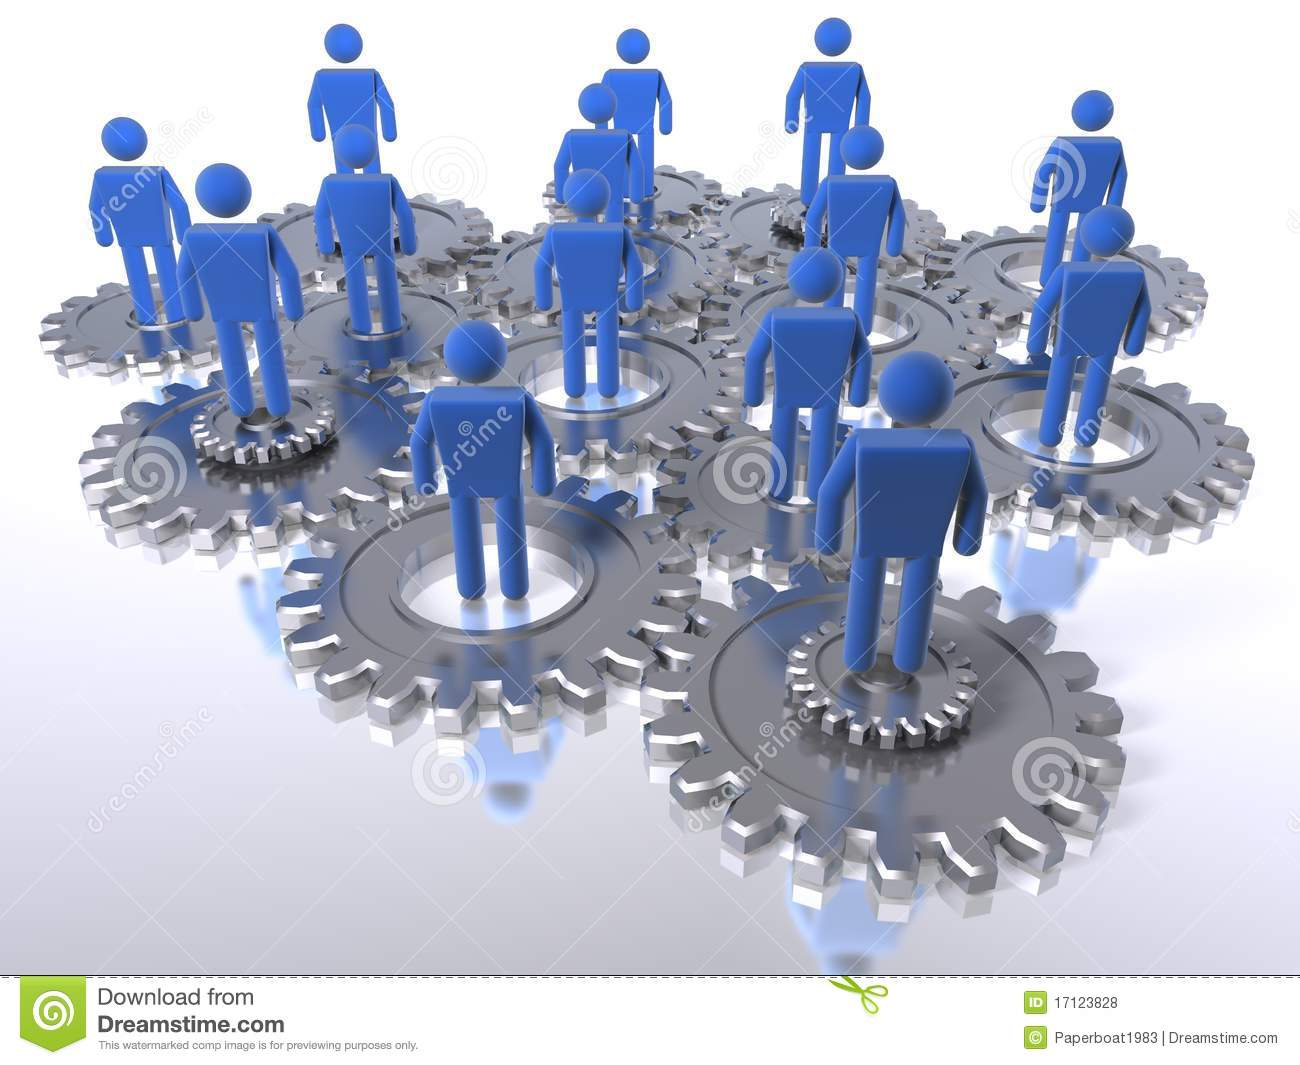 Figures on cogs as a metaphor for a team